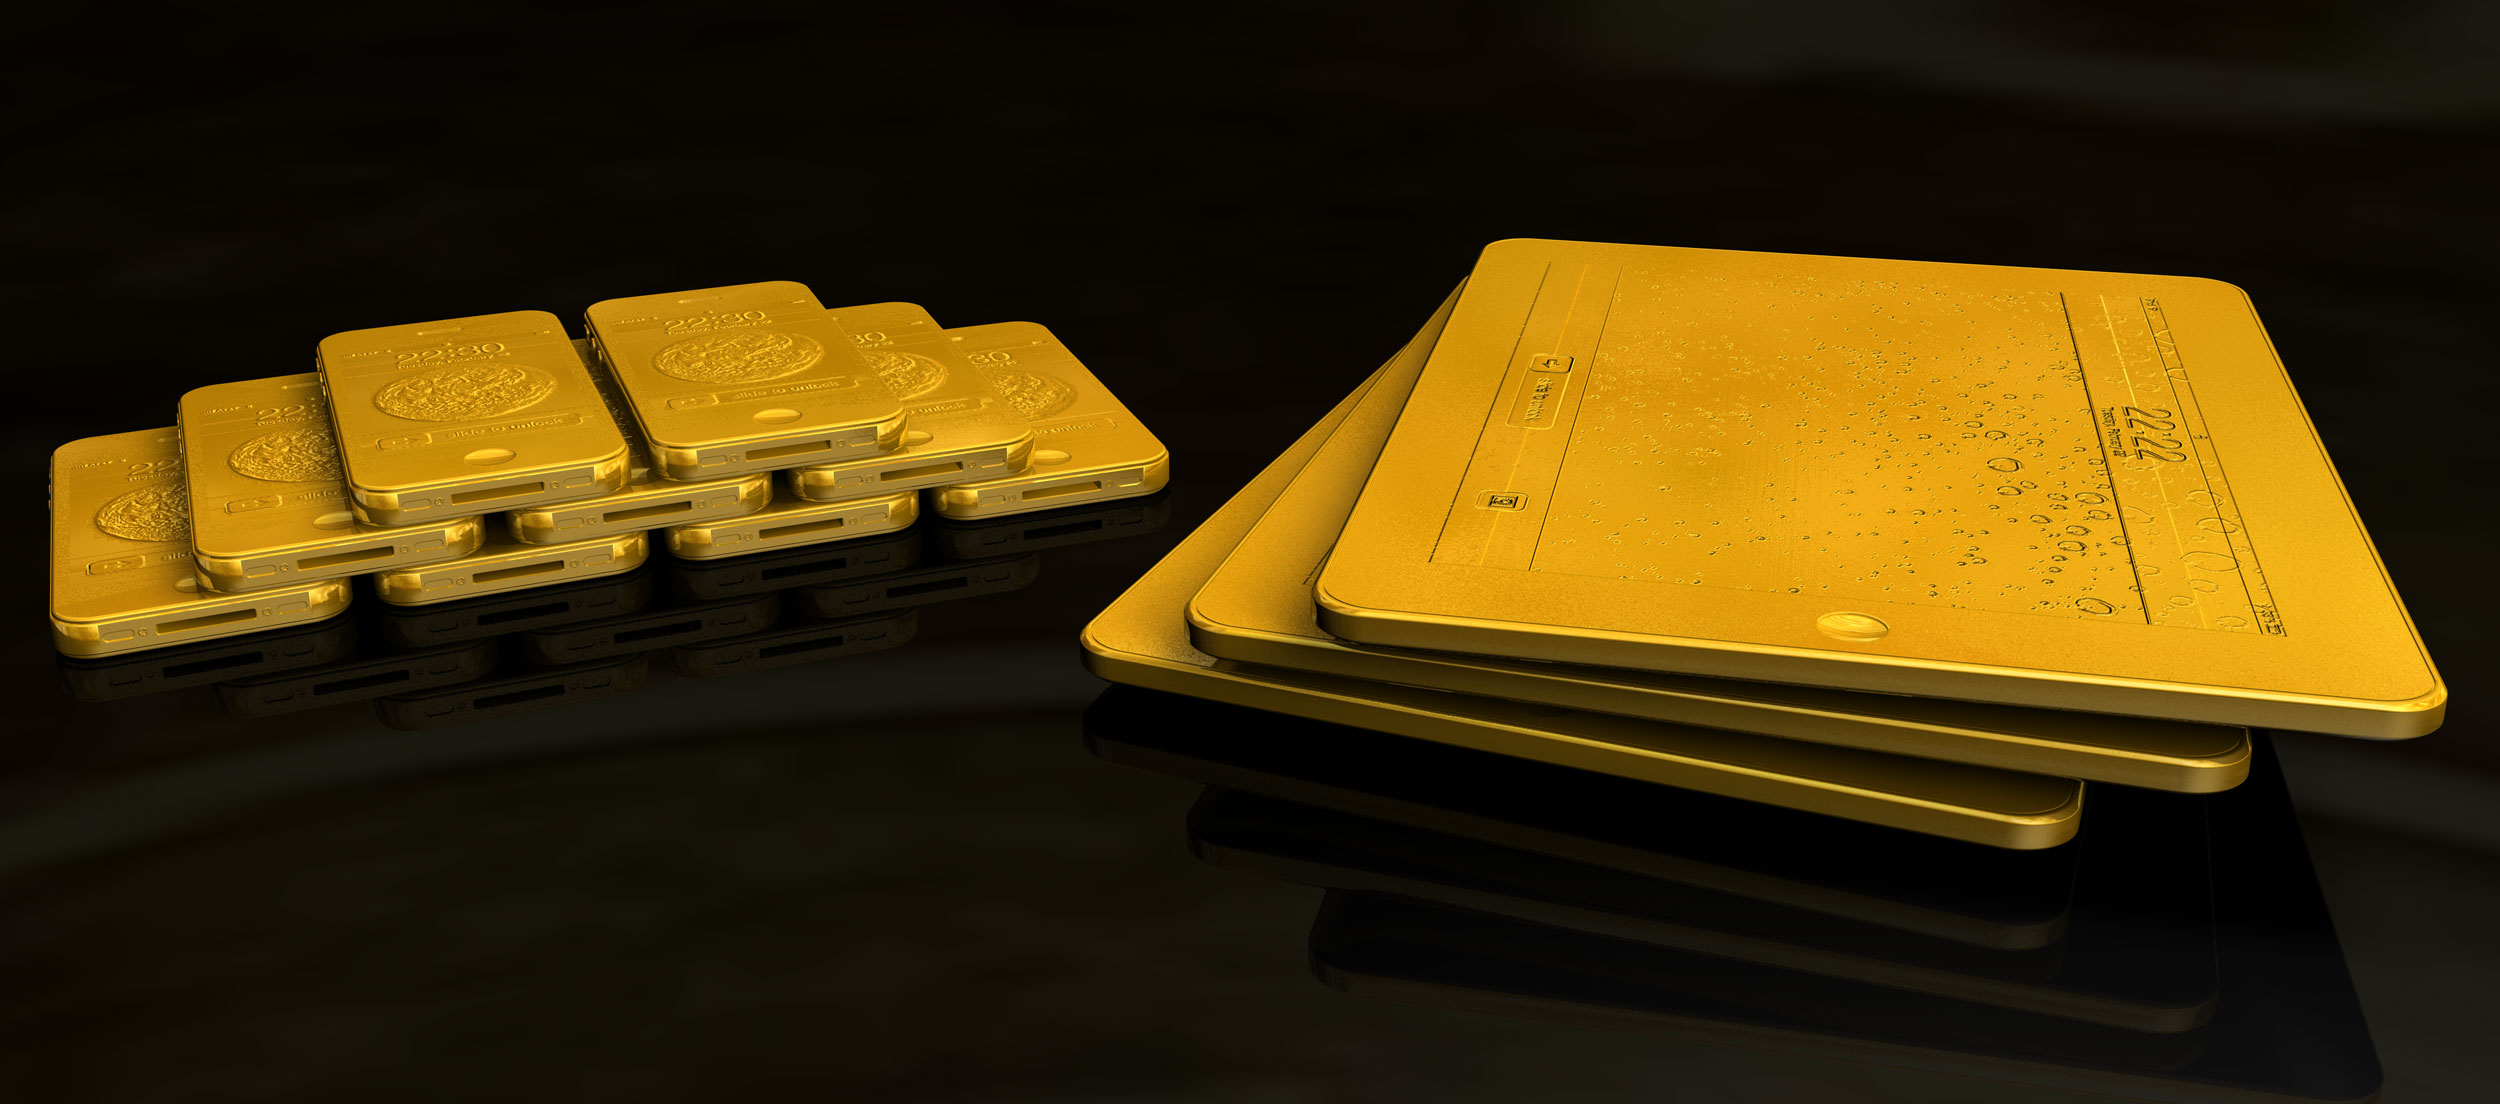 Solid Gold iPhone, 1kg, and Solid Gold iPad, 8kg